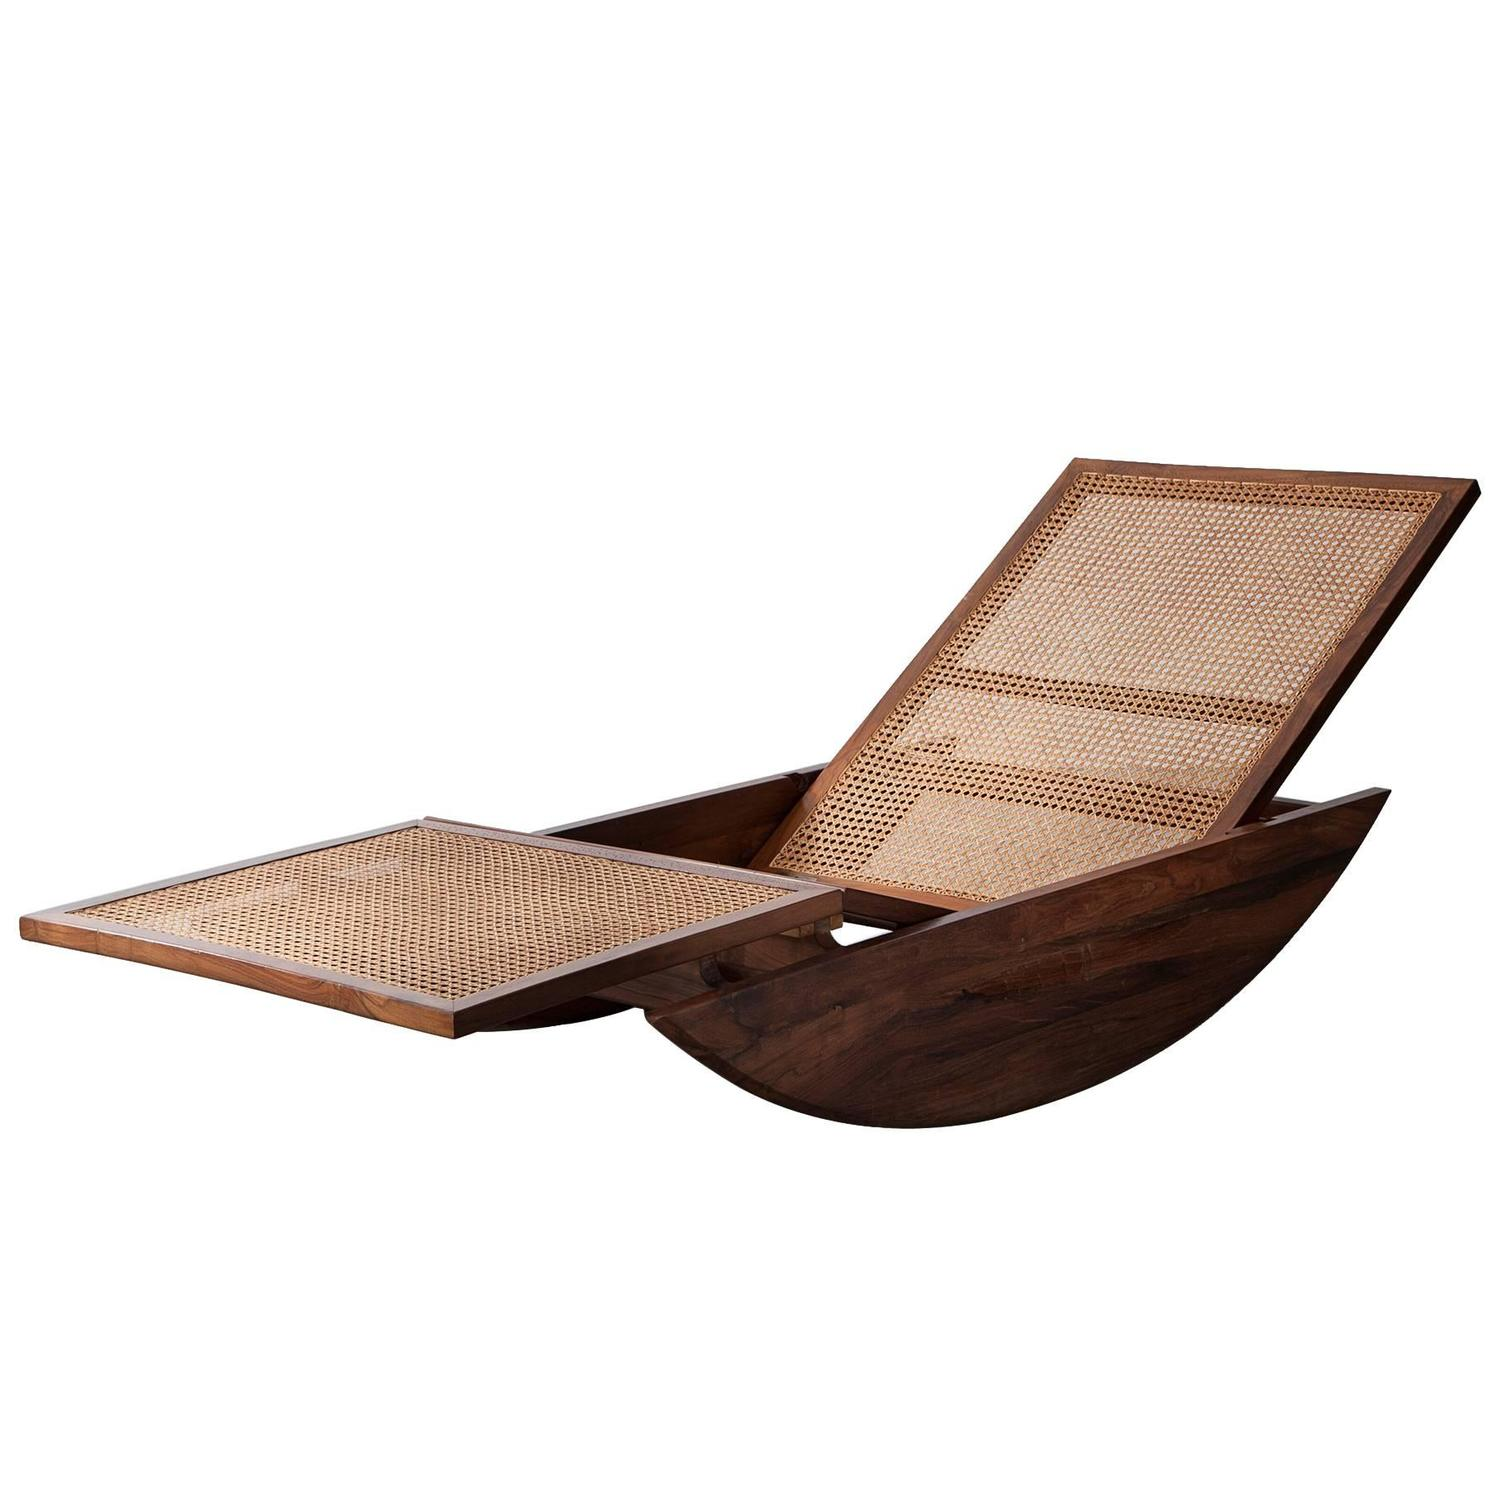 Rocking chaise longue with cane seat by joaquin tenreiro for Cane chaise longue